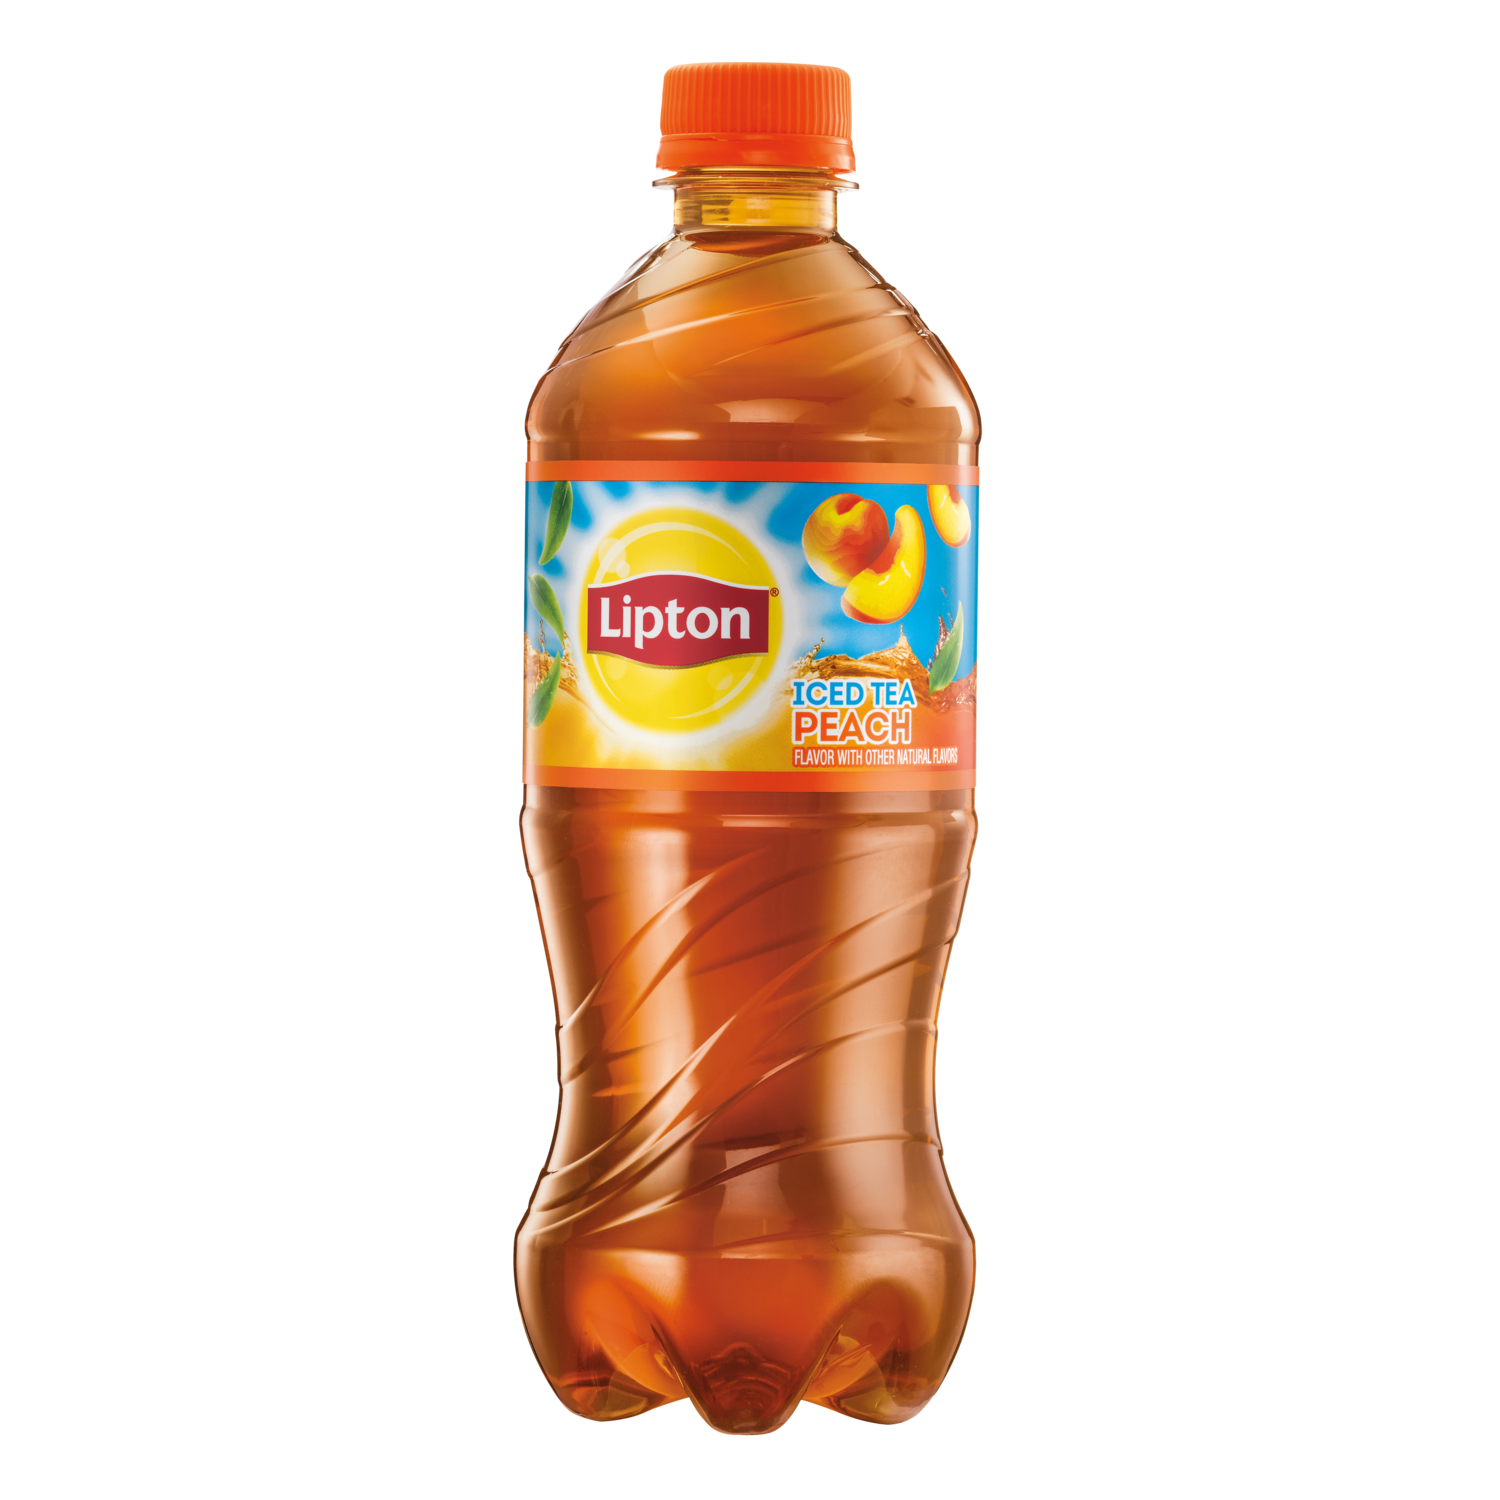 Black Iced Tea Peach Lipton